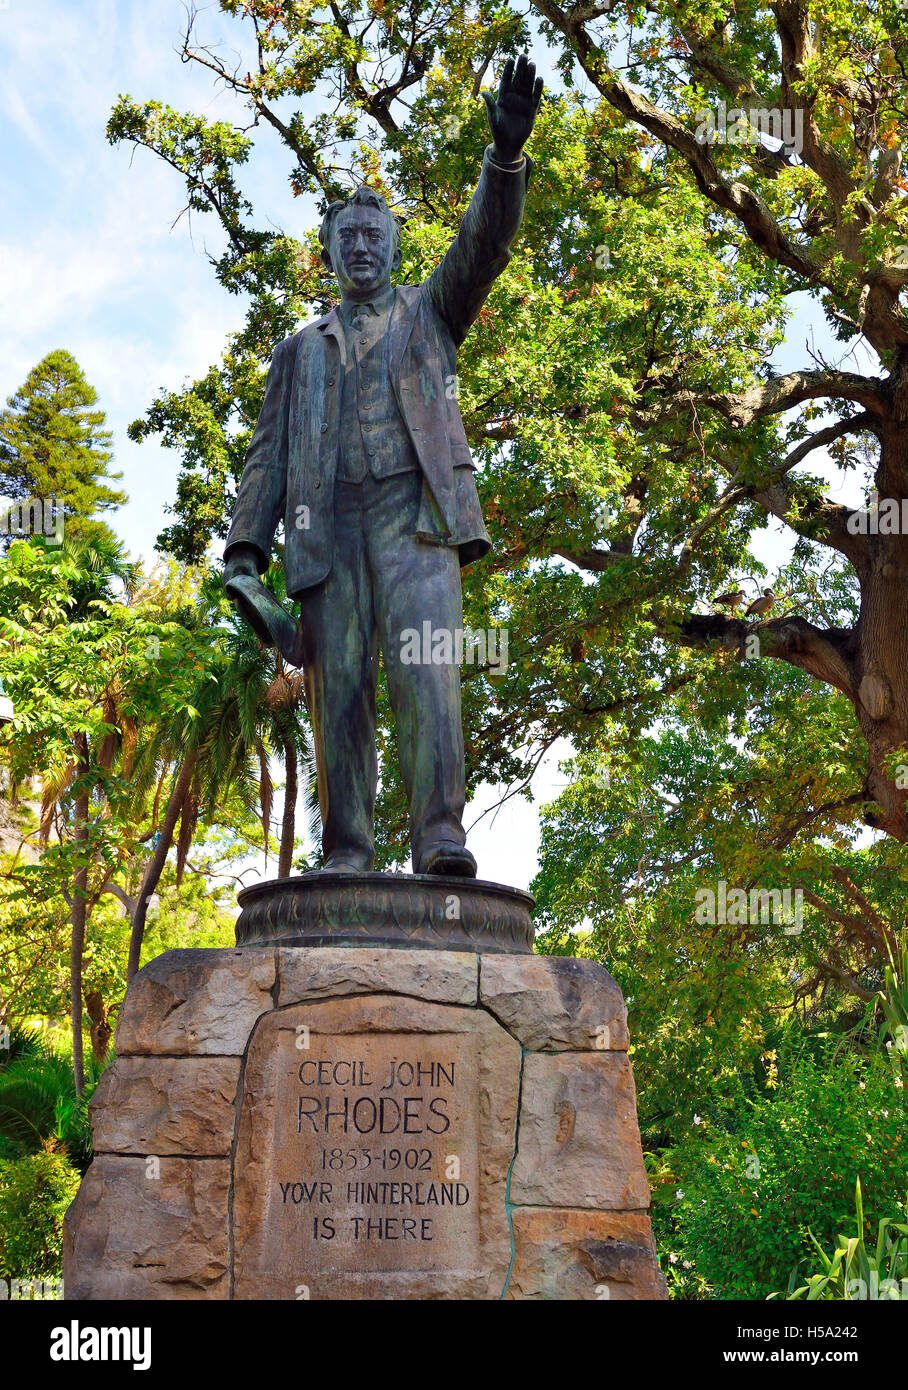 A full statue of Cecil Rhodes African coloniser, wearing a 3-piece suit,standing with his left hand raised and pointing - Stock Image